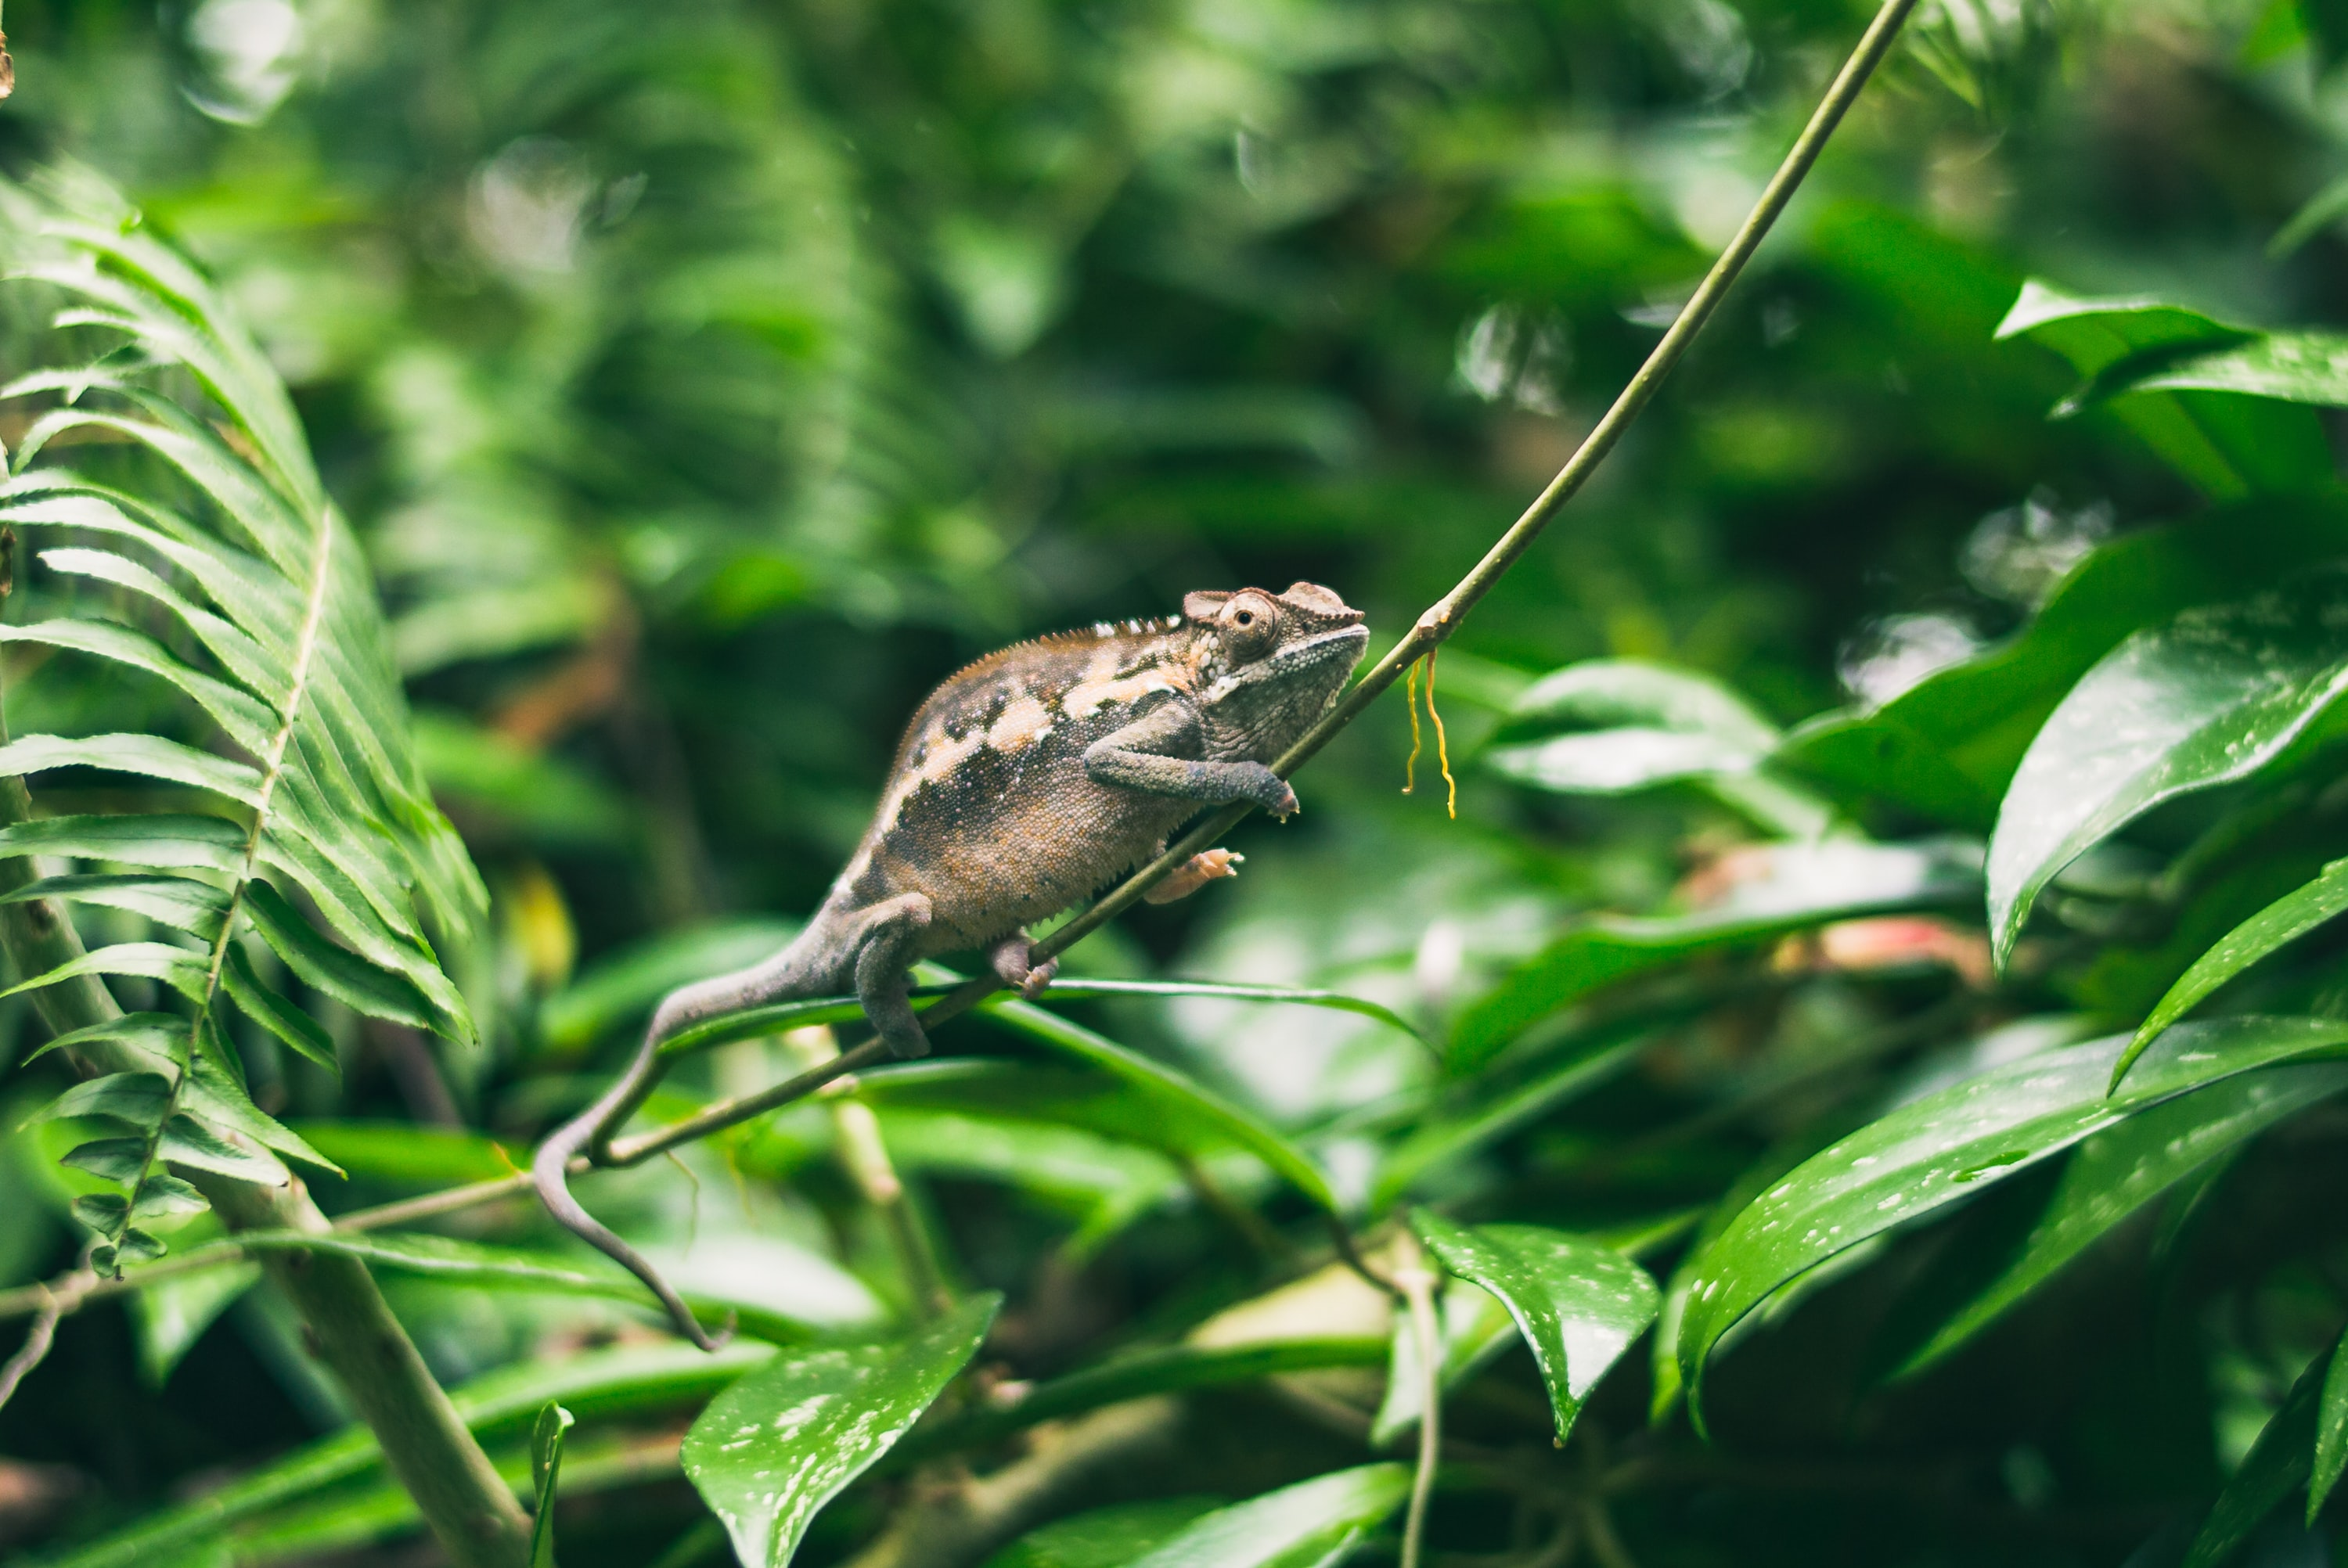 A brown chameleon climbing up a green branch among fern leaves